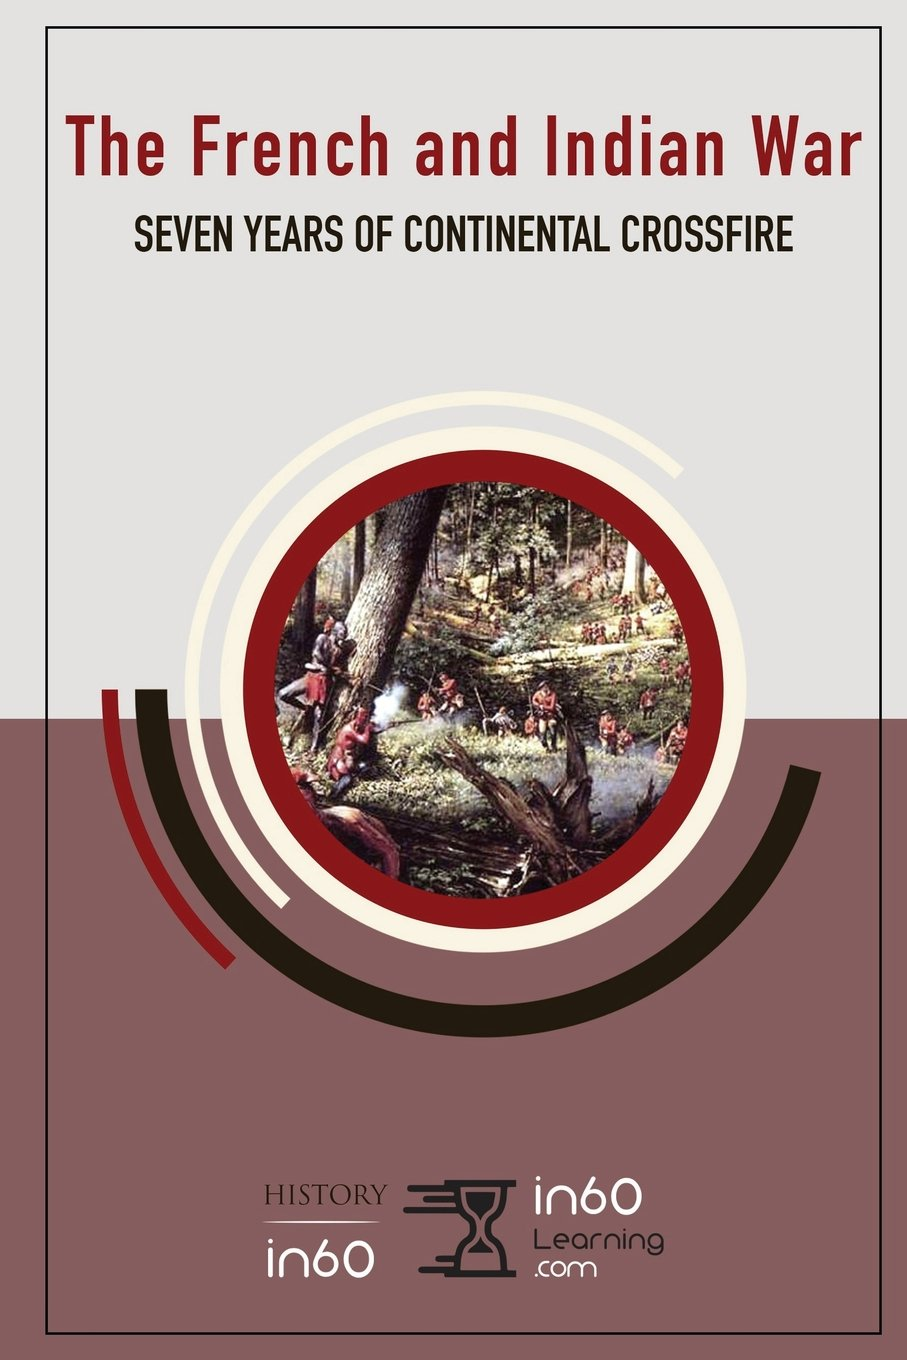 The French and Indian War: Seven Years of Continental Crossfire